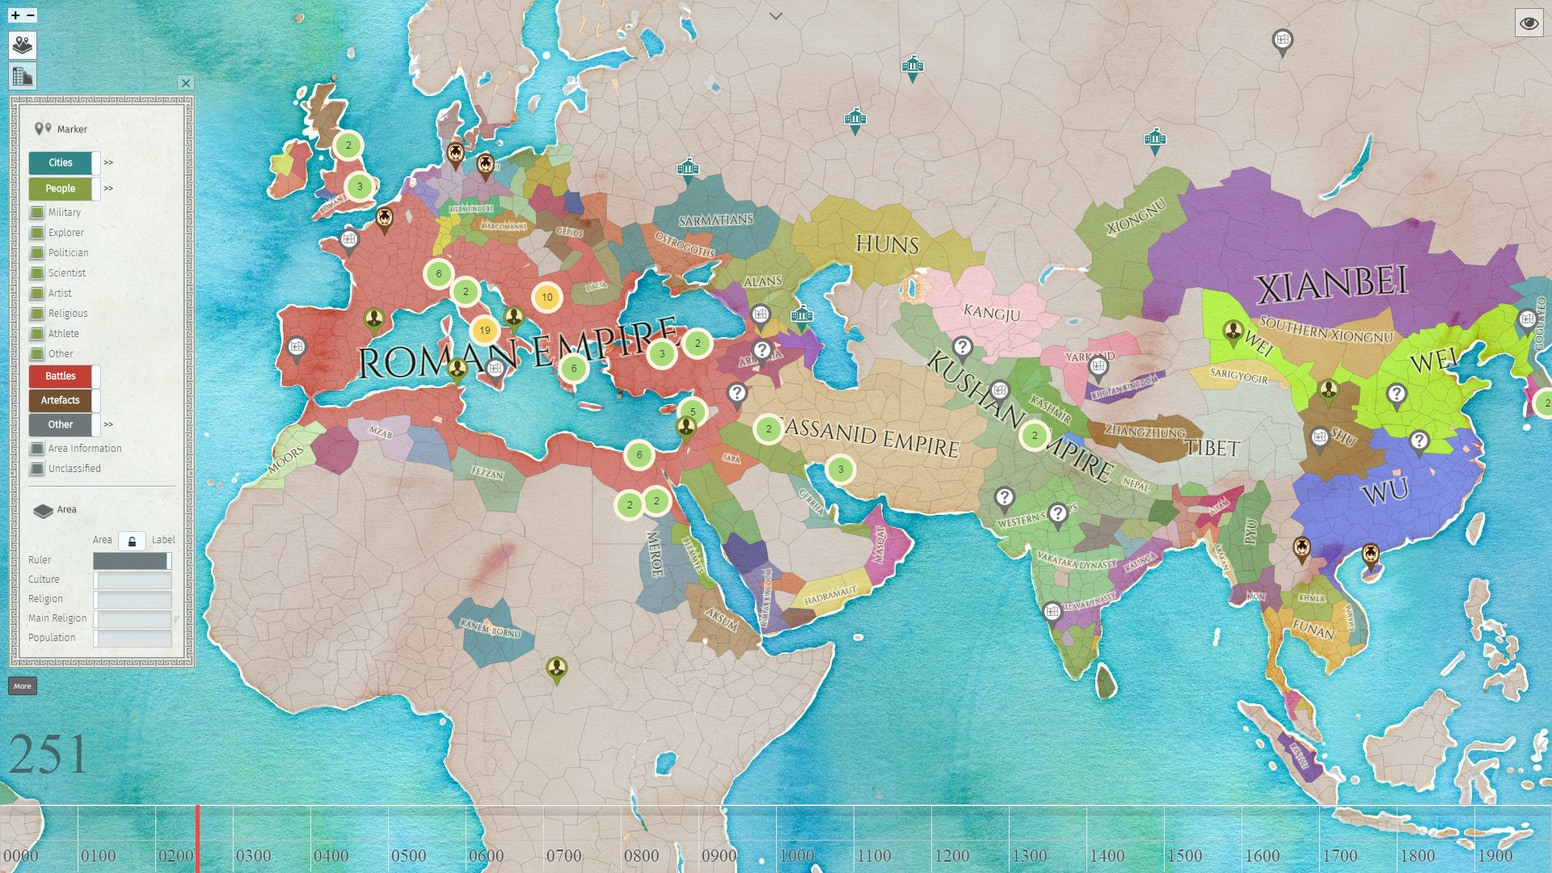 Chronas: Interactive History Map Application by tmar ... on united states map, history articles, history label, asia map, history text, hawaii map, national park map, history culture, topographical map, travel map, middle east map, lake map, history jobs, history search, history about european explorers, history education, flat map, history globe, park map, history review, history information, history film, history paper, history dictionary, history geography, history flowcharts, history food, site map, history school, history clock, exploration map, vision map, history of it, mexico map, america map, history research, peak map, scotland map,